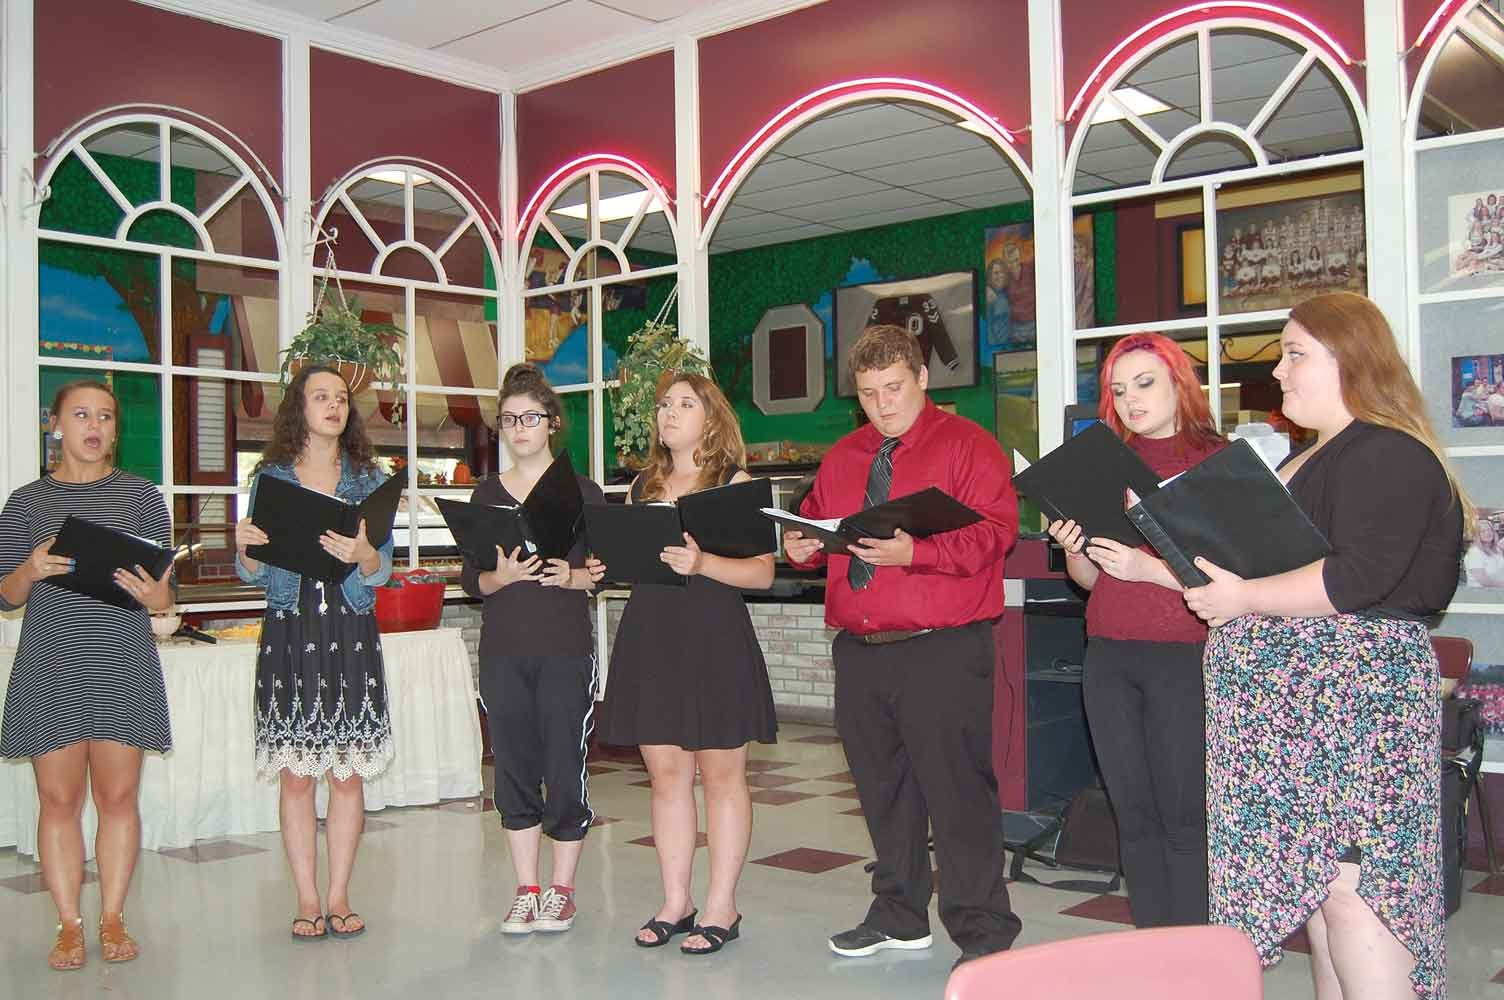 Members of the Owsley County High School Chorus serenaded attendees at the Upper Kentucky River meeting. Several sessions have featured student musicians – including a 40-plus member pep band – providing pre-dinner performances for the host districts' guests.